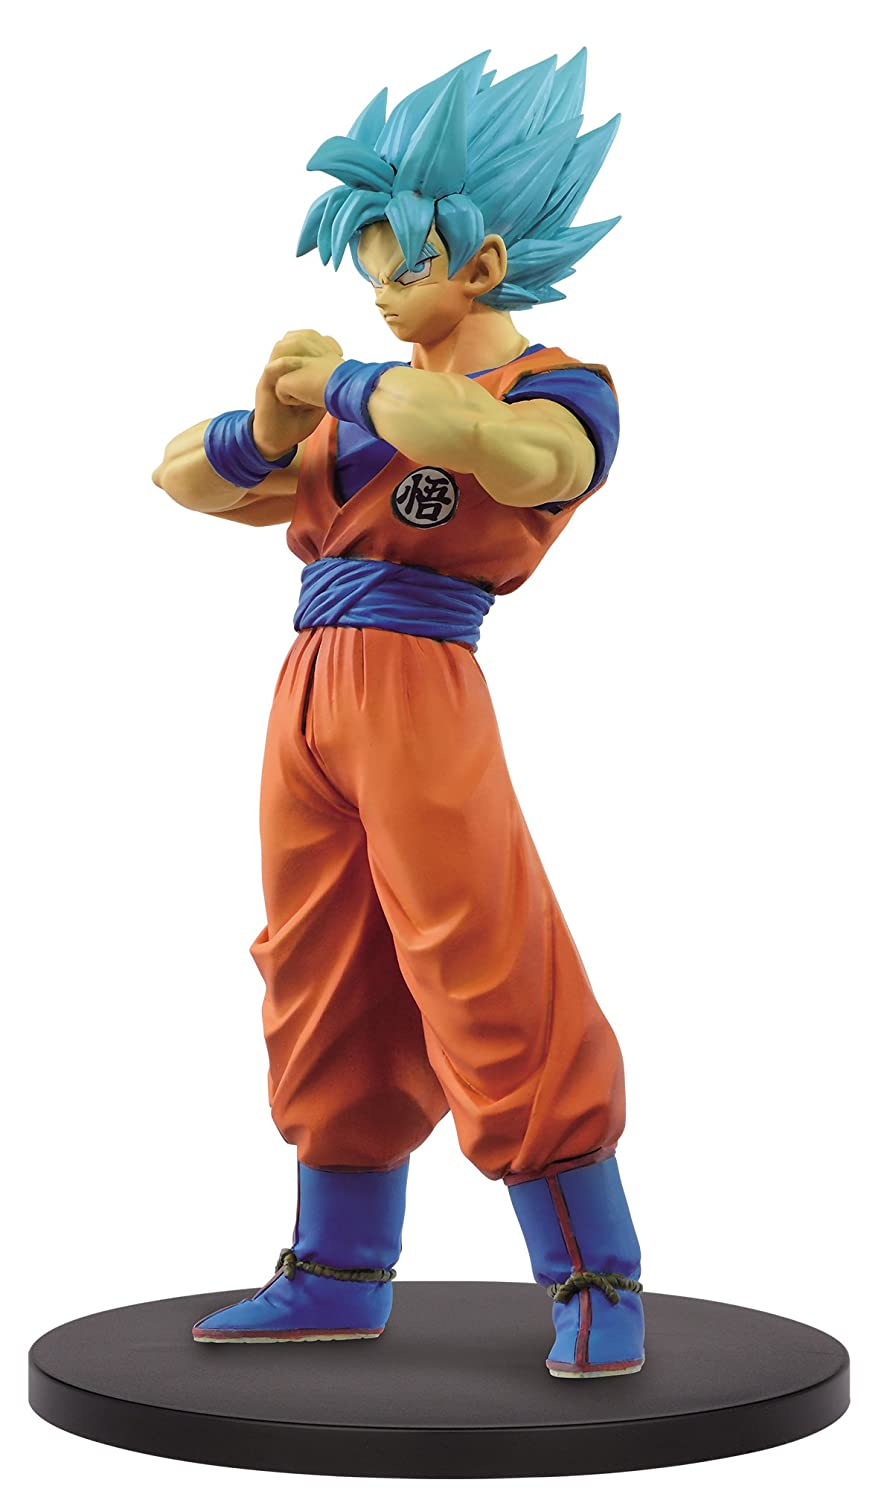 Dragon Ball Super DXF The Super Warriors Vol. 4 Super Saiyan Blue Goku Figure Banpresto 26544